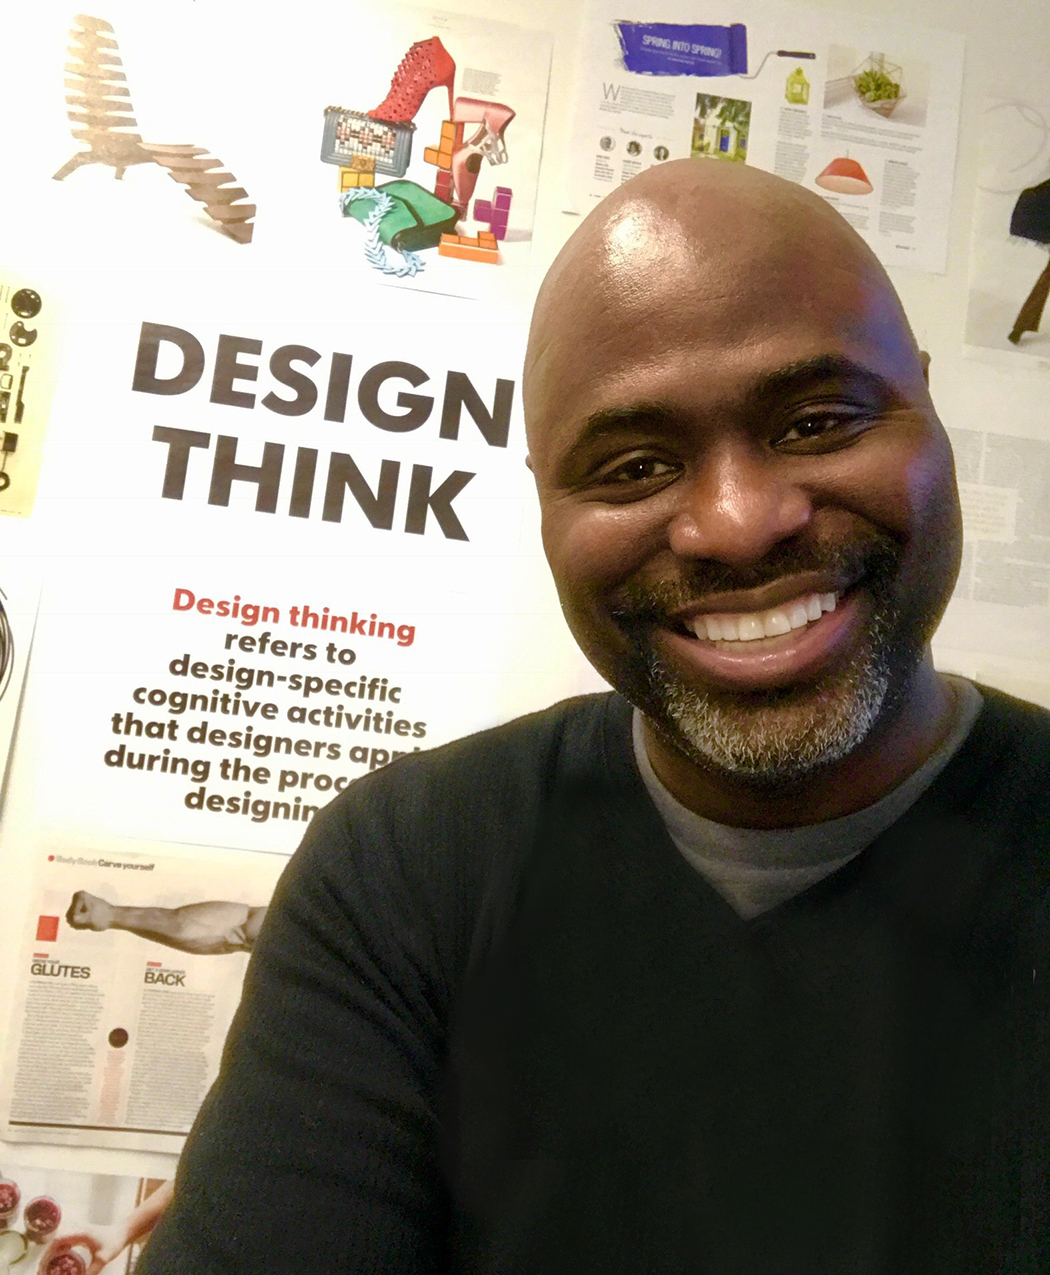 The power to solve problems by using design principles extends beyond a traditional use of design. - Jerald Council, creative director